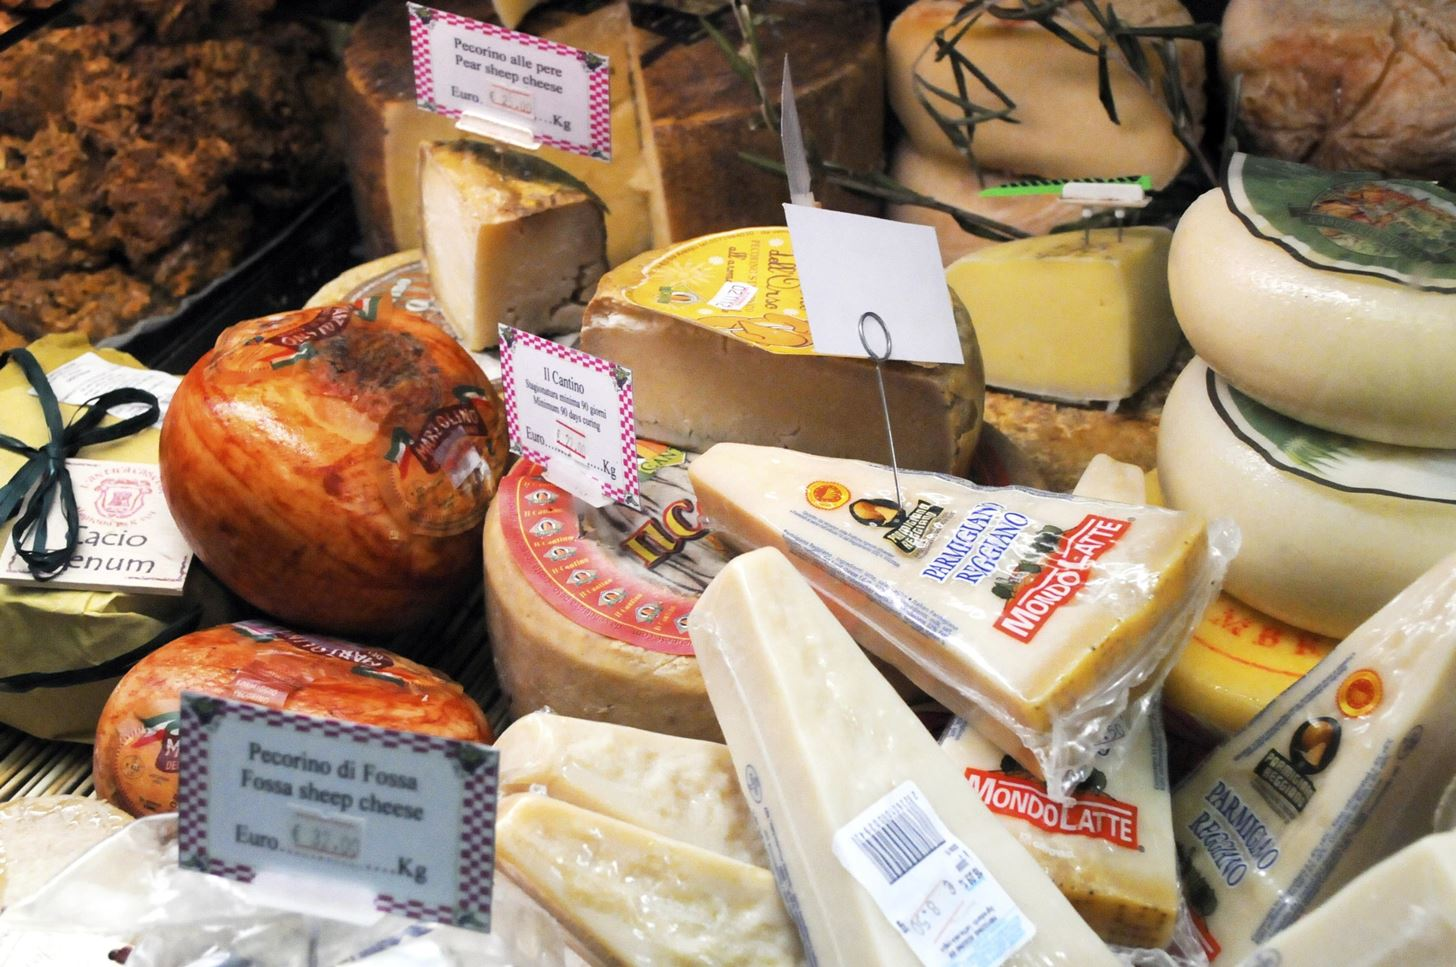 14 Types of Bacteria & 10 Strains of Fungus Are Responsible for All the Delicious Flavors of Cheese